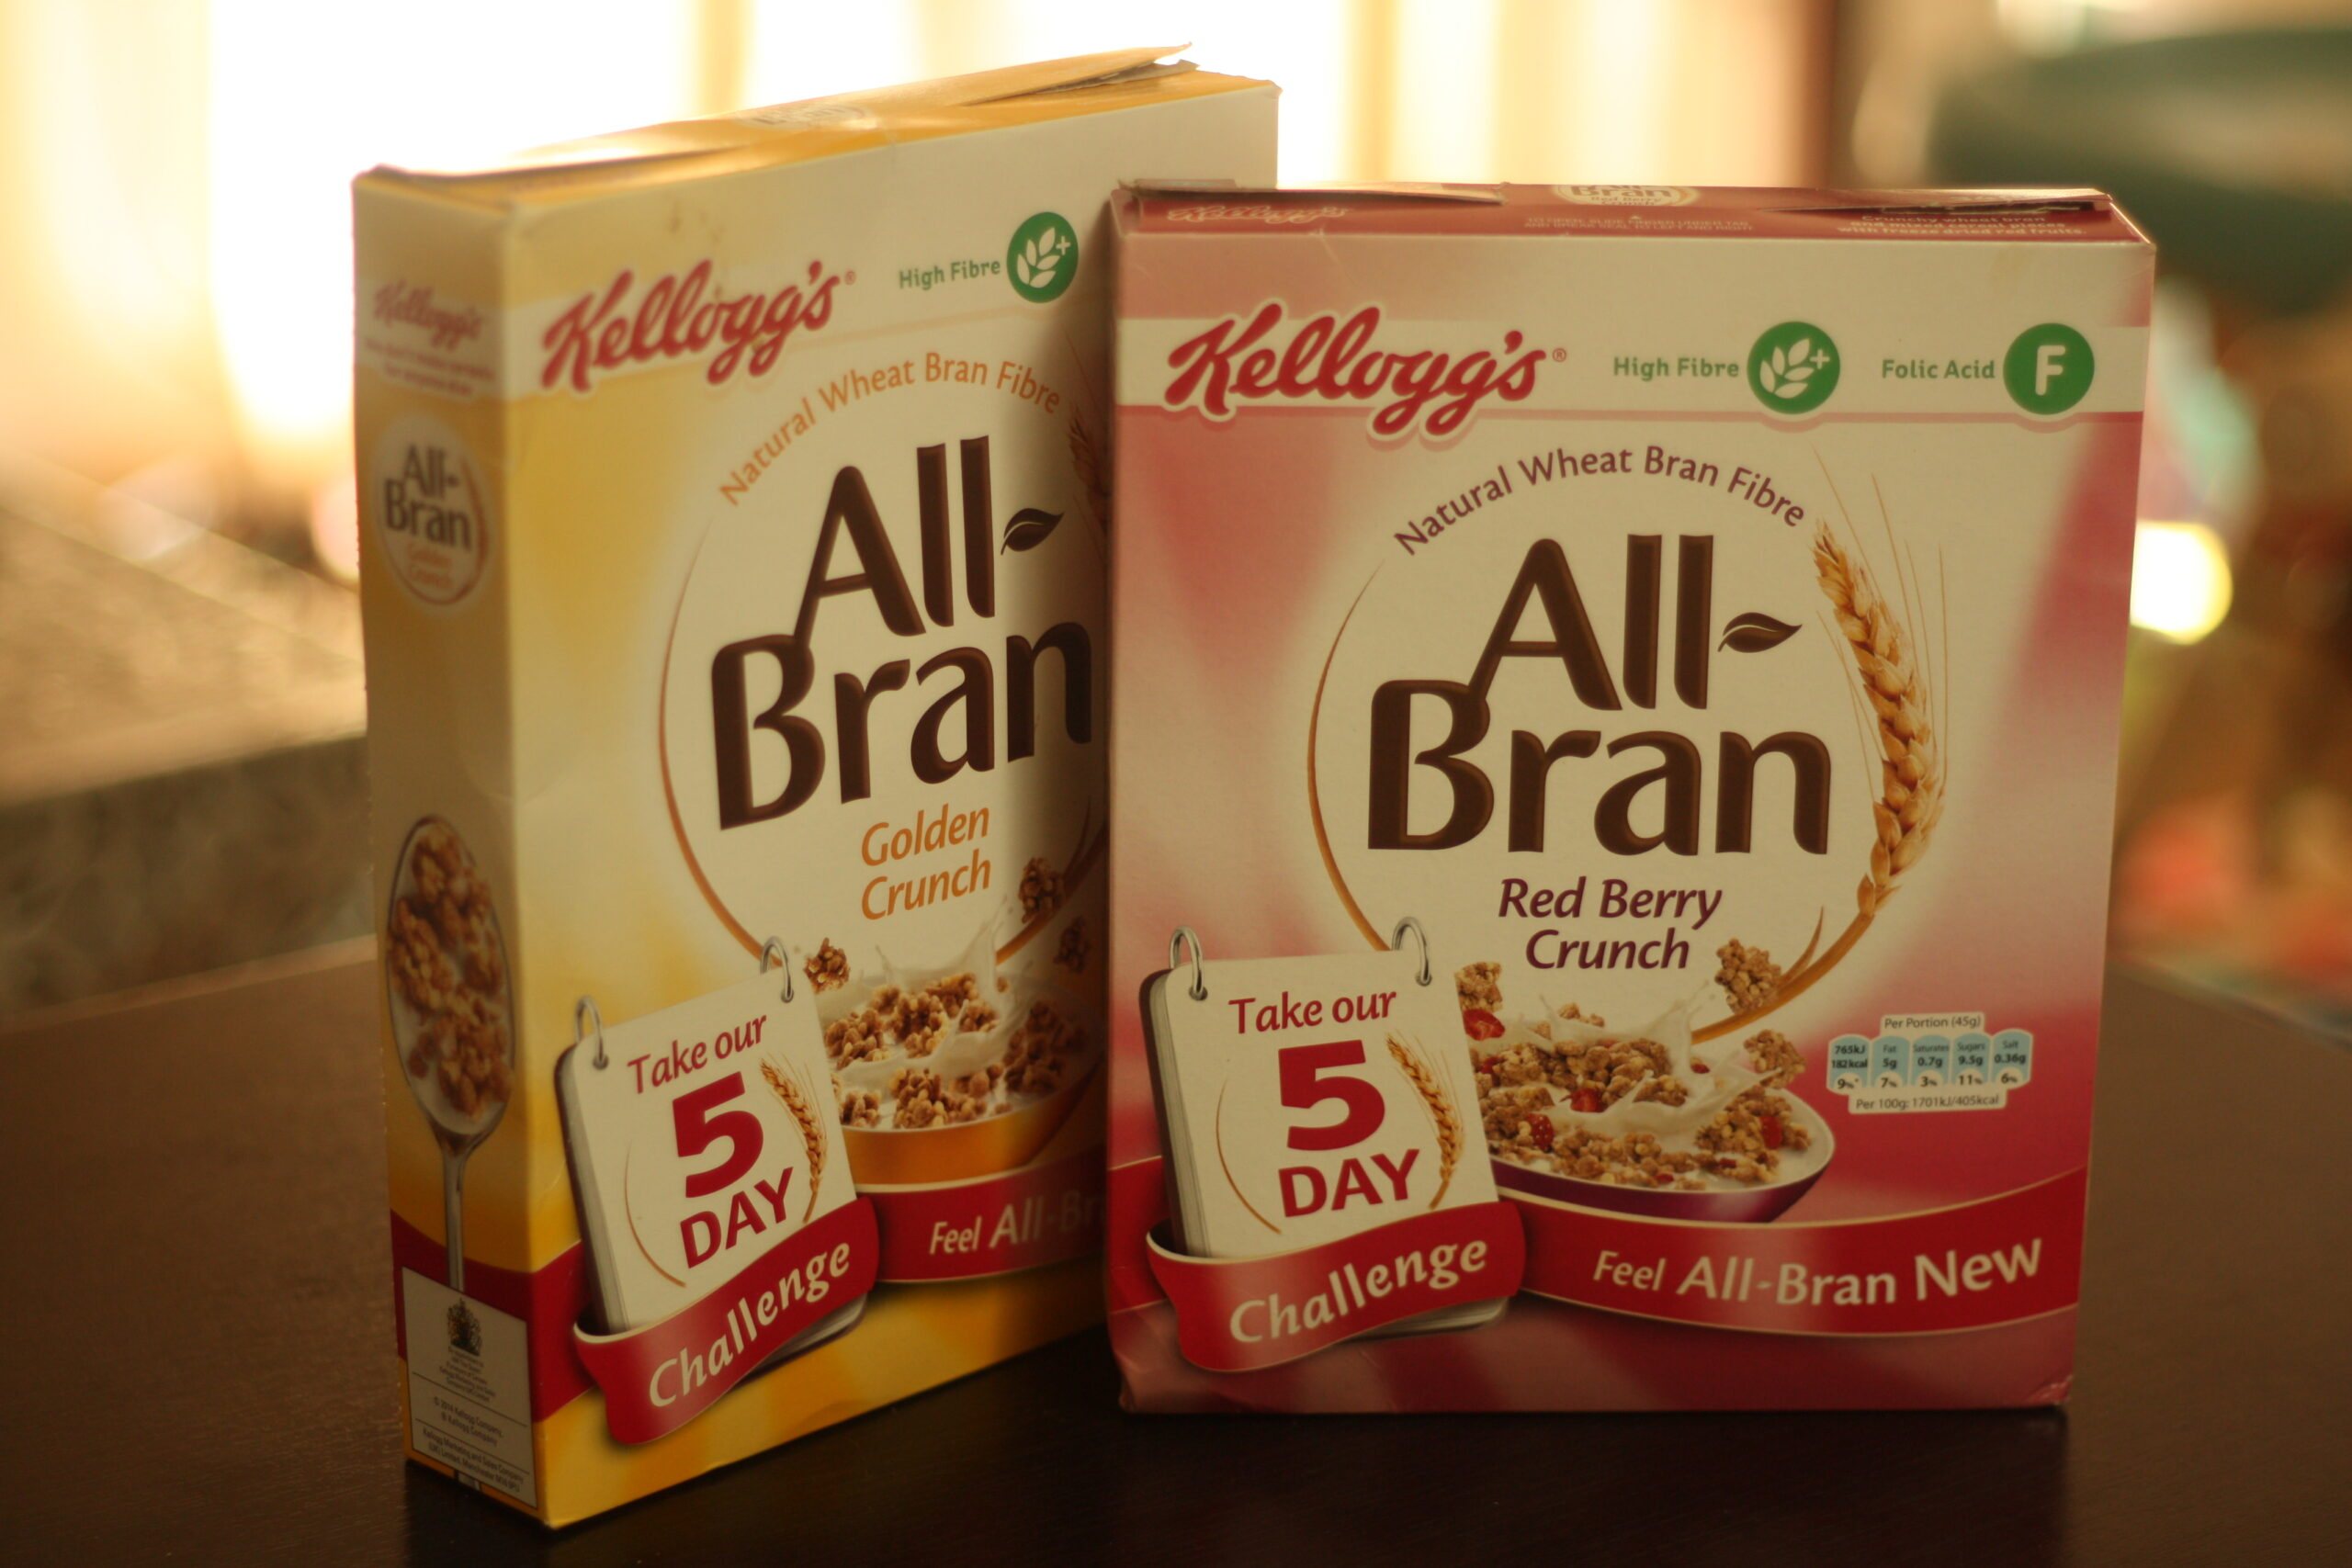 Kellogs All Bran